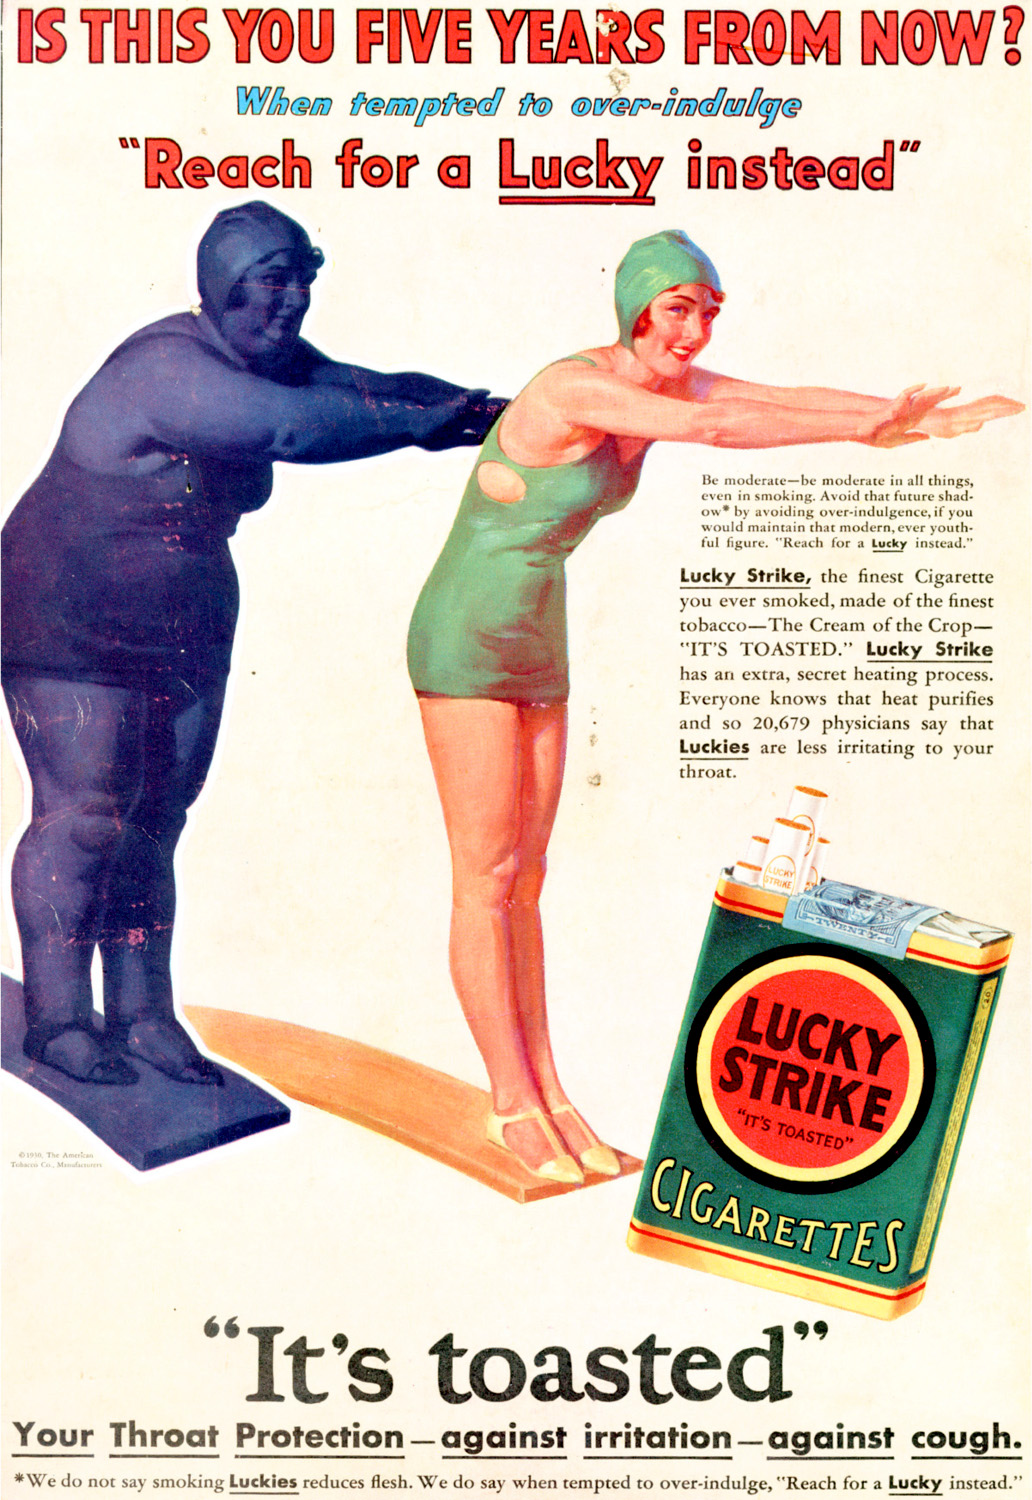 A Lucky Strike advert from the 1930s showing the supposed health benefits of smoking. Source: tobacco.stanford.edu, available  here .